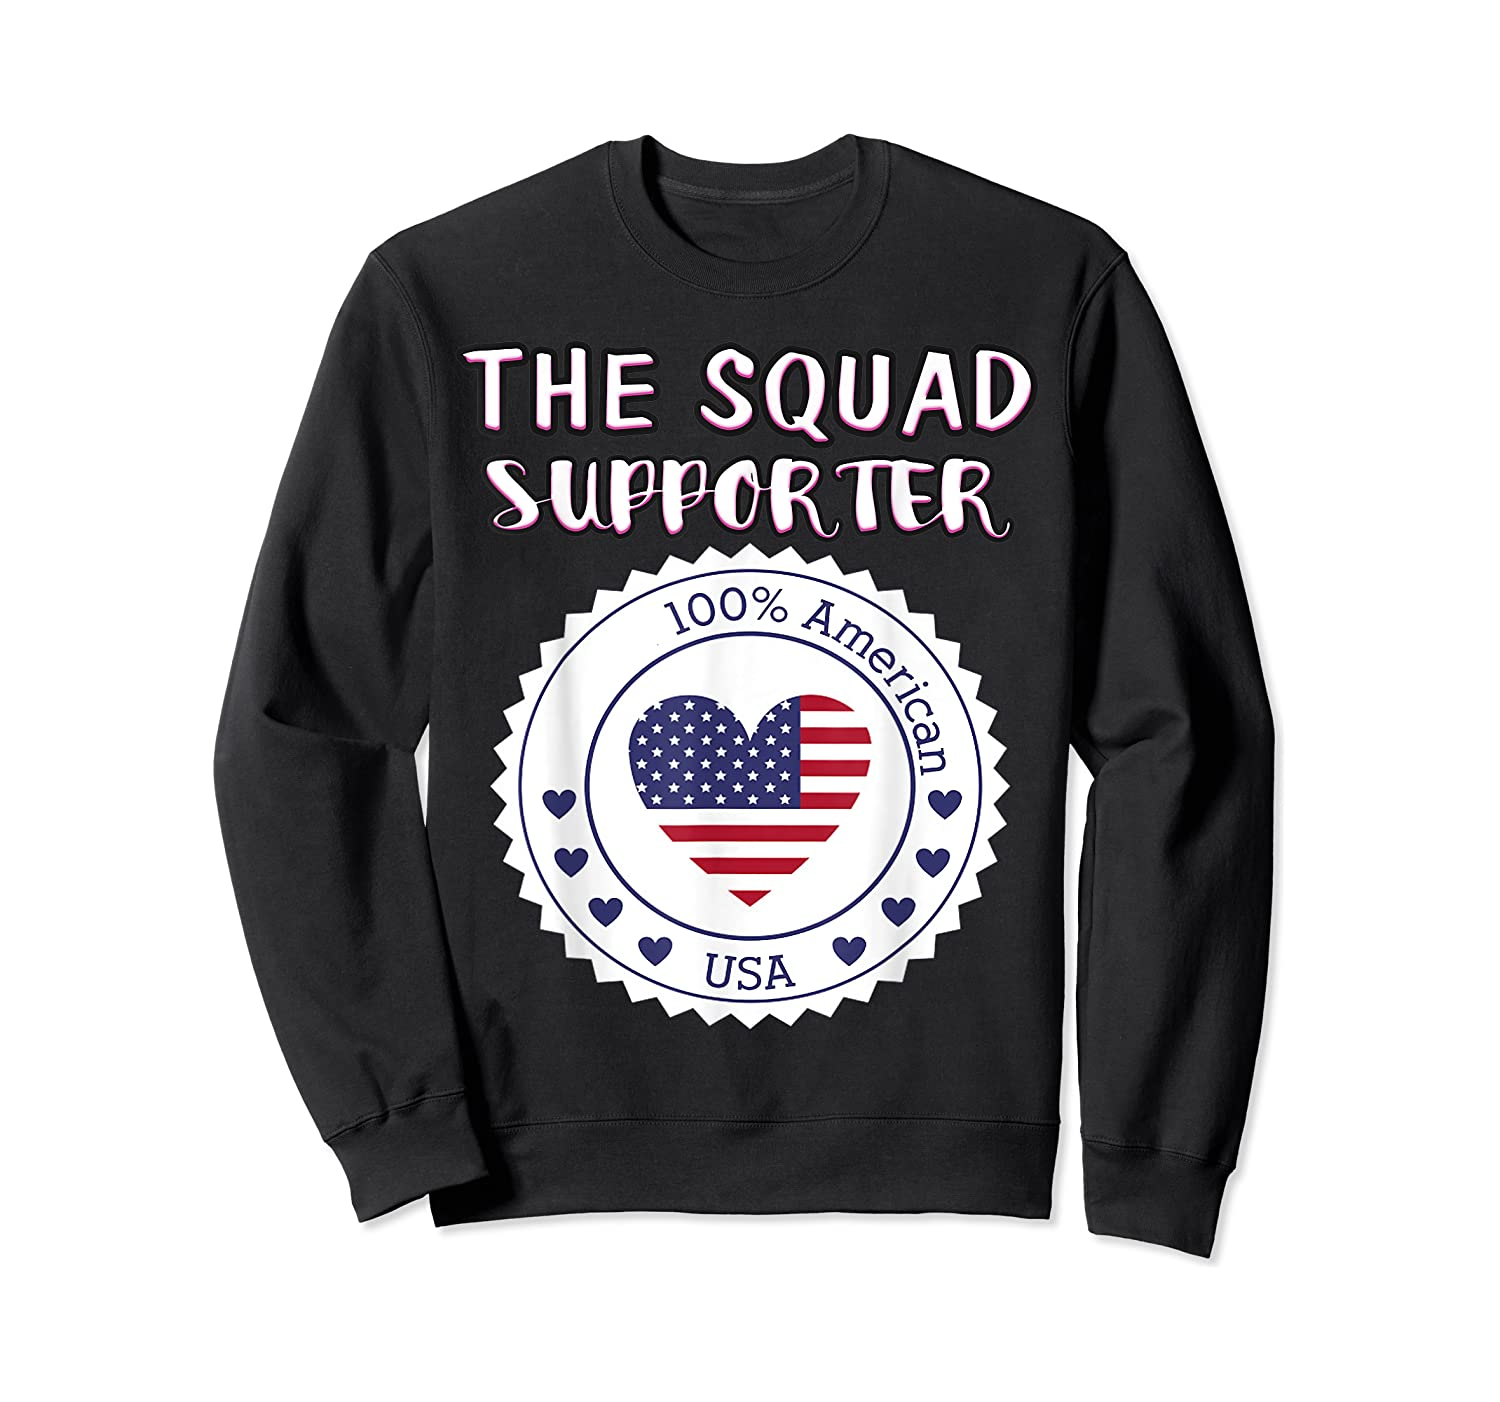 Proud Supporter Of Squad Aoc Pressley Omar Tlaib Shirts Crewneck Sweater